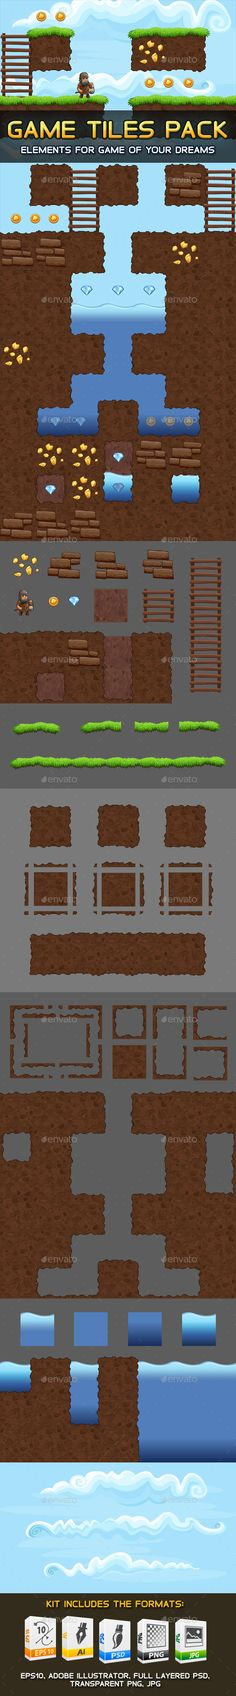 Game Tiles Pack - #Tilesets #Game #Assets Download here: https://graphicriver.net/item/game-tiles-pack/20408371?ref=alena994